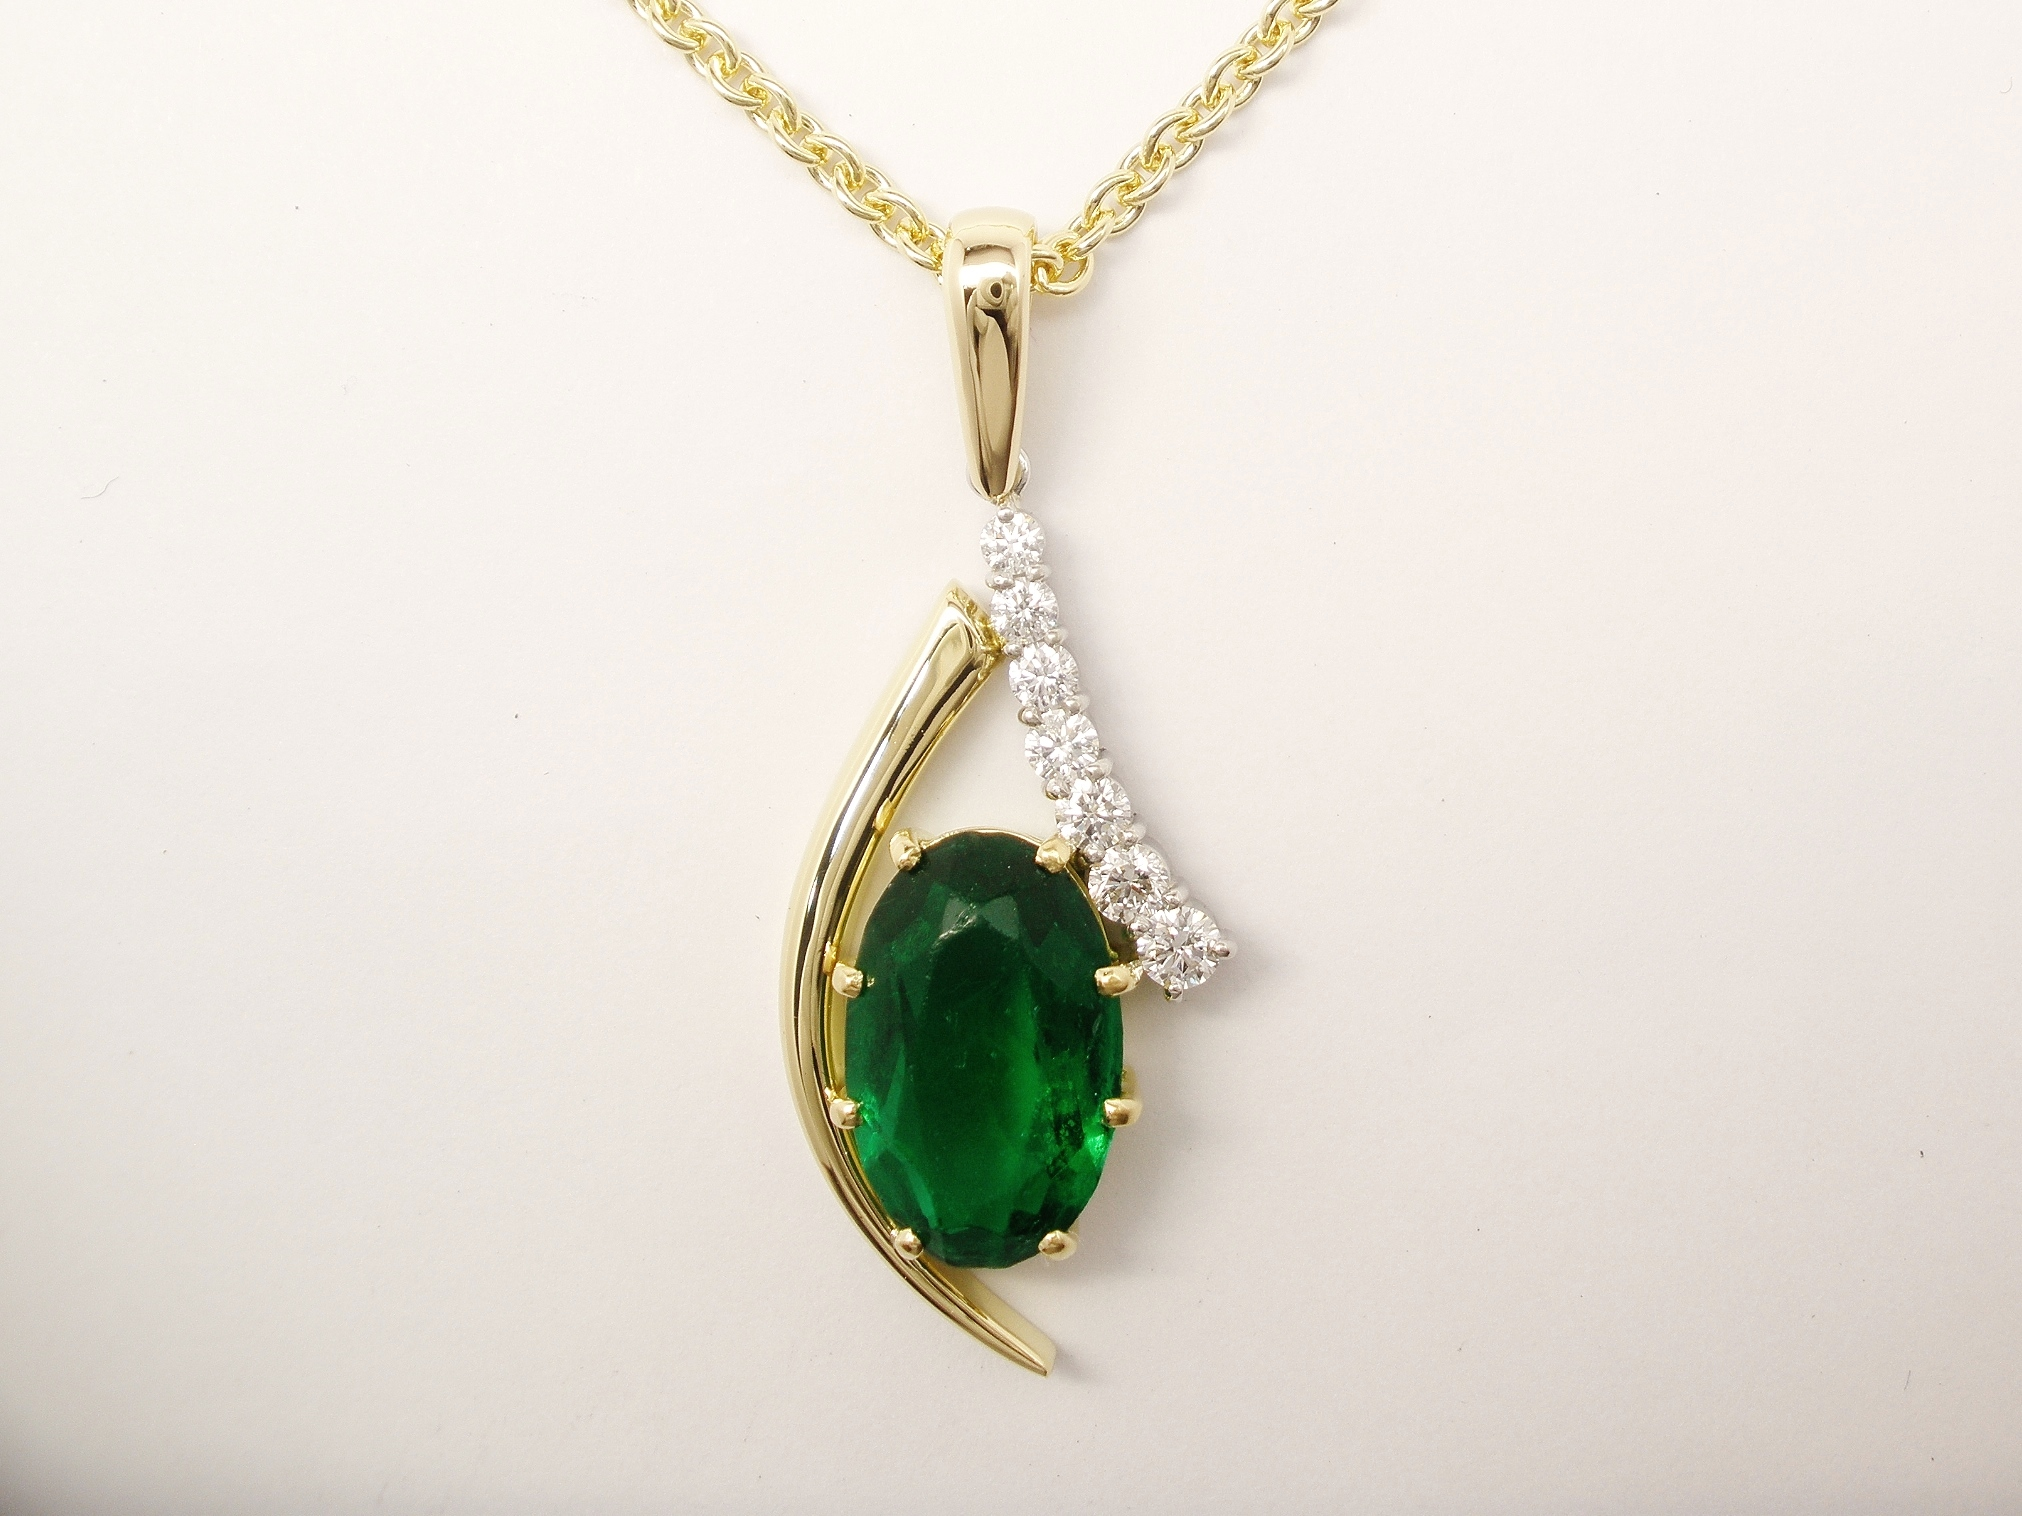 An 8 stone synthetic emerald and round brilliant cut diamond pendant mounted in 18ct yellow gold and platinum. The emerald was supplied by the client & sentimental to them.